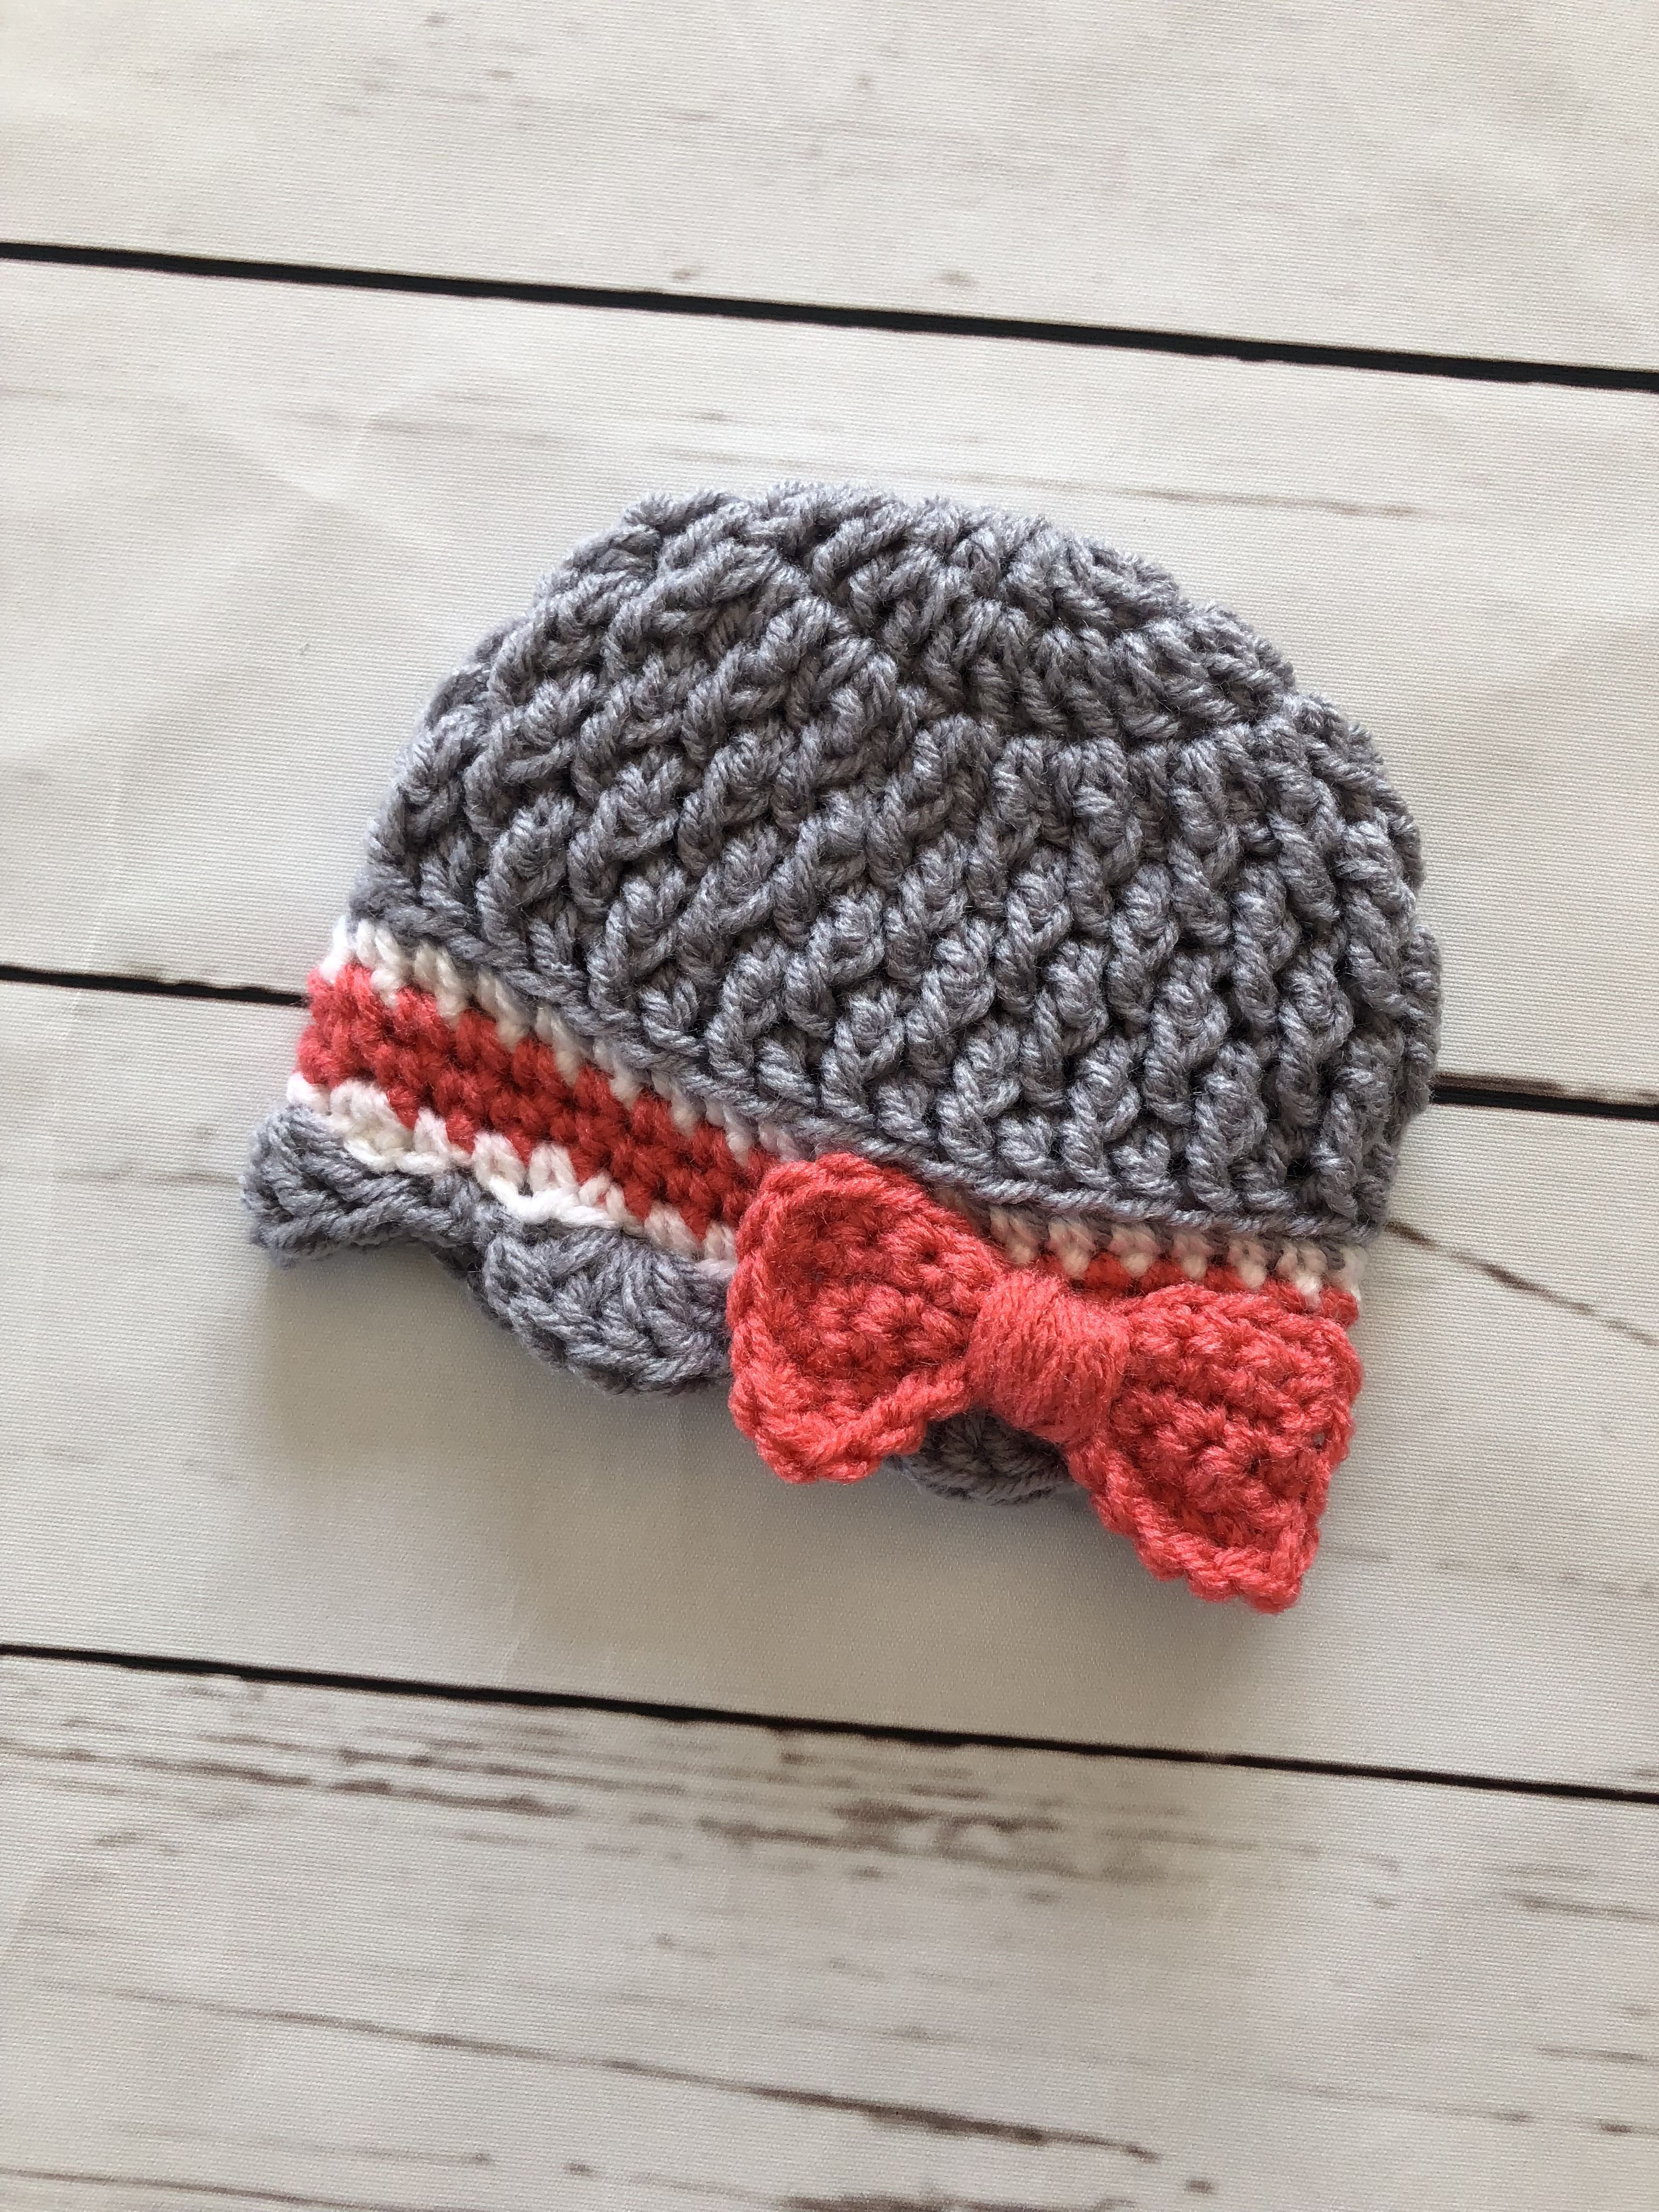 b8ab93ad7 Cutest Coming Home Hat - Newborn Photo Prop - Baby Girl Crochet Hat ...